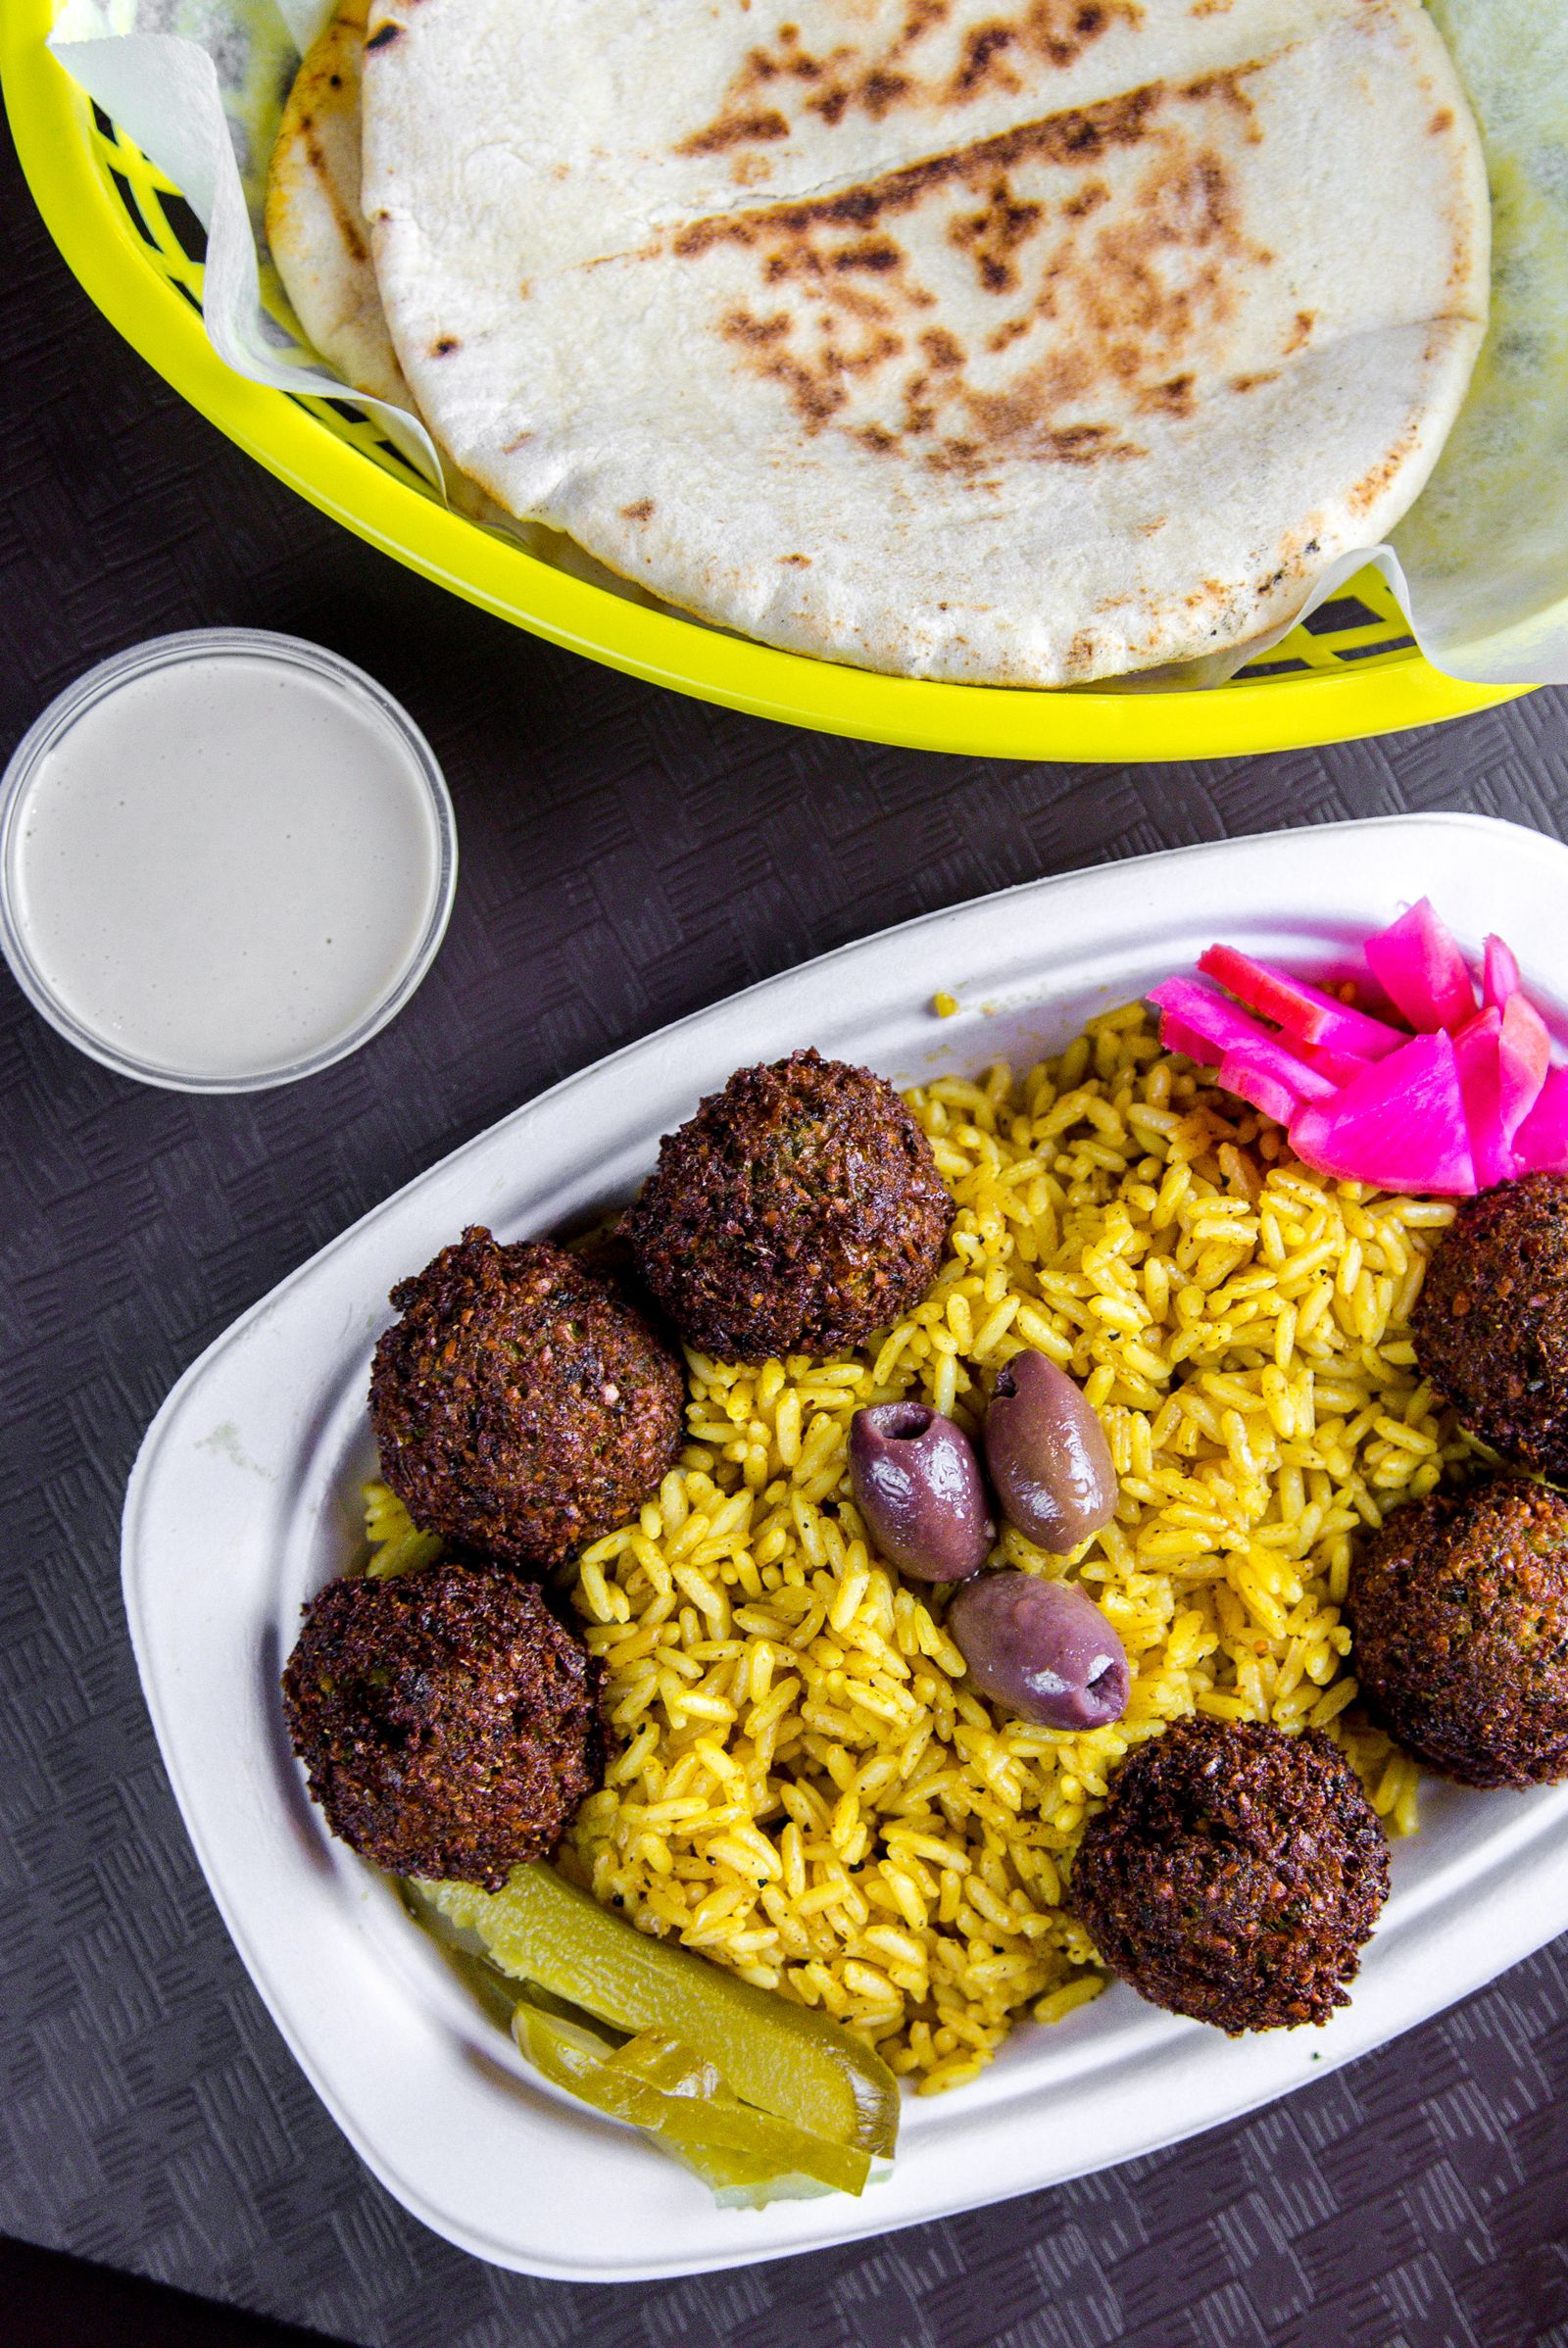 New York City's Iconic Mamoun's Falafel Announces First Texas Location Coming Soon To Dallas